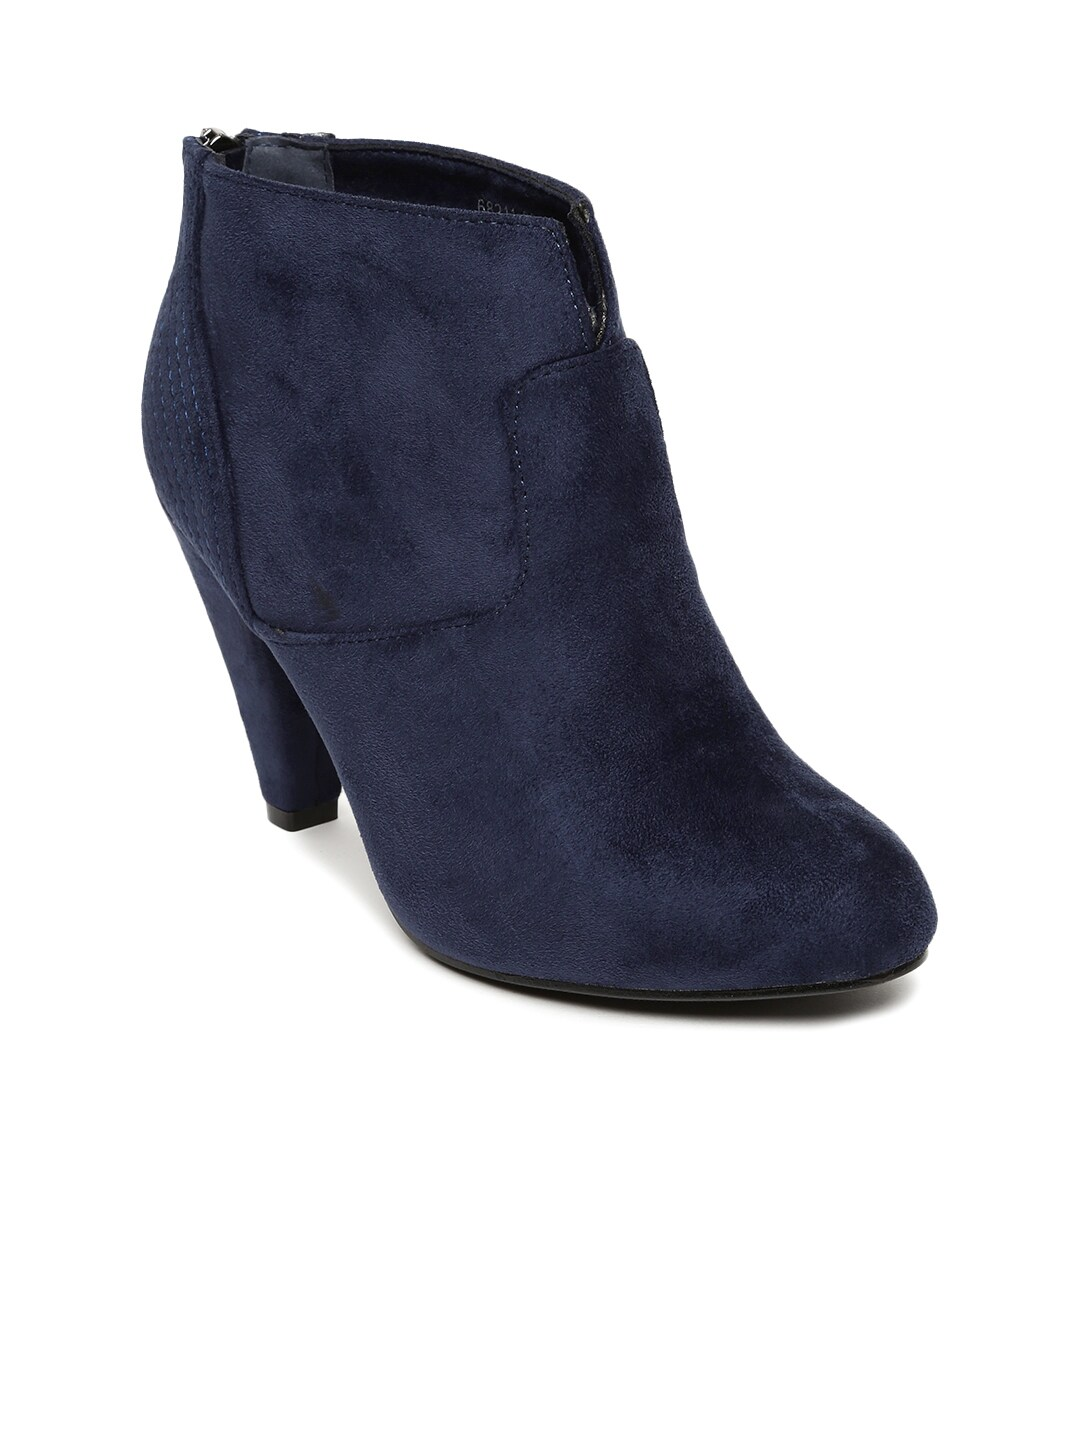 Tresmode Women Navy Blue Solid Heeled Boots image